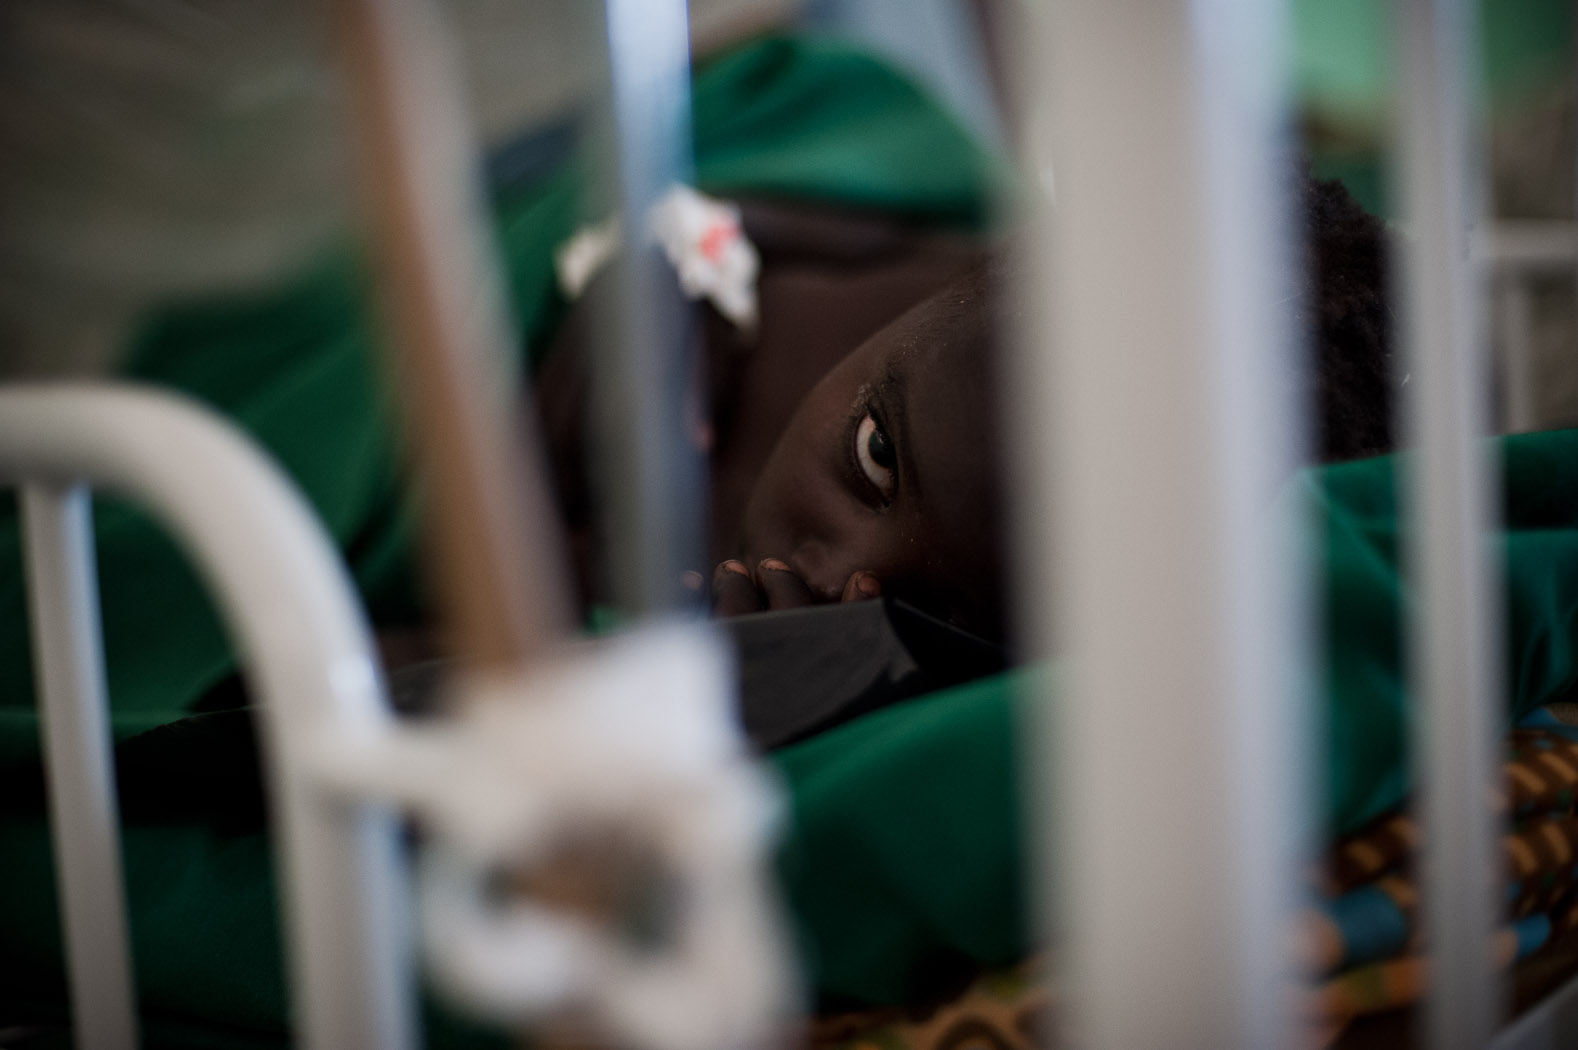 """Viviana Issa lies paralysed in a bed at a medical facility in Sudan's Nuba mountains. """"I don't know what to do with this girl"""" says the only doctor in this facility. Viviana is leaking spinal fluid, and paralysed from the chest down after her spinal cord was severed by a bomb fragment hit her in the neck, breaking vertebrae. The bombing also killed two of her siblings."""